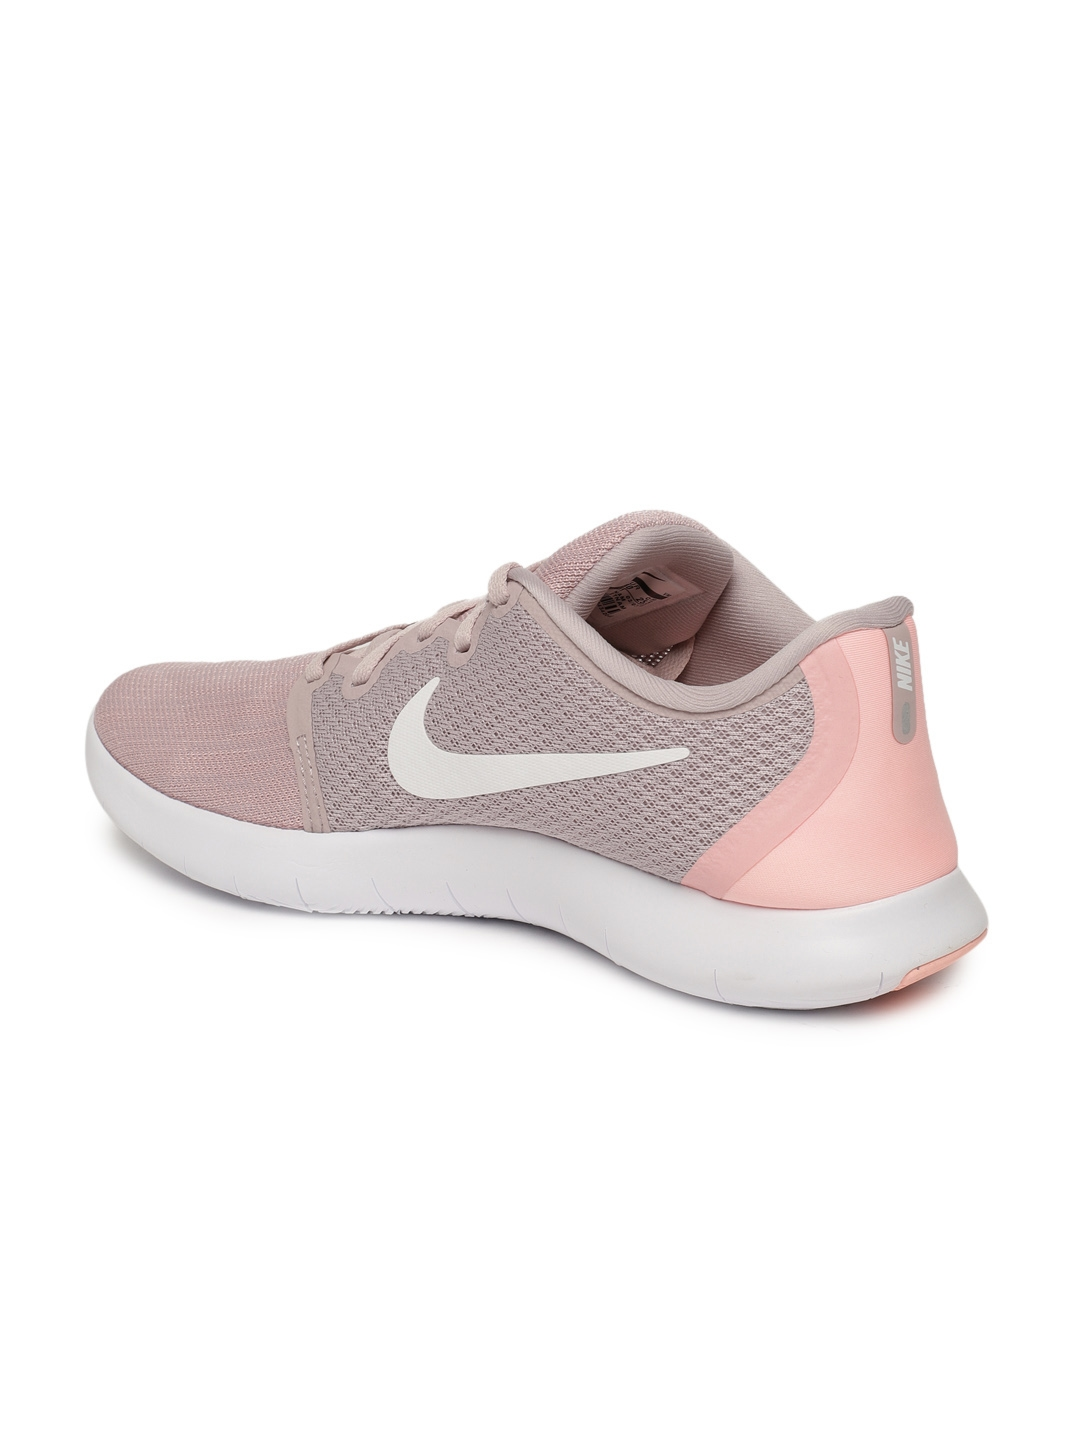 f8f8ca3a45 Buy Nike Women Pink Flex Contact 2 Running Shoes - Sports Shoes for ...